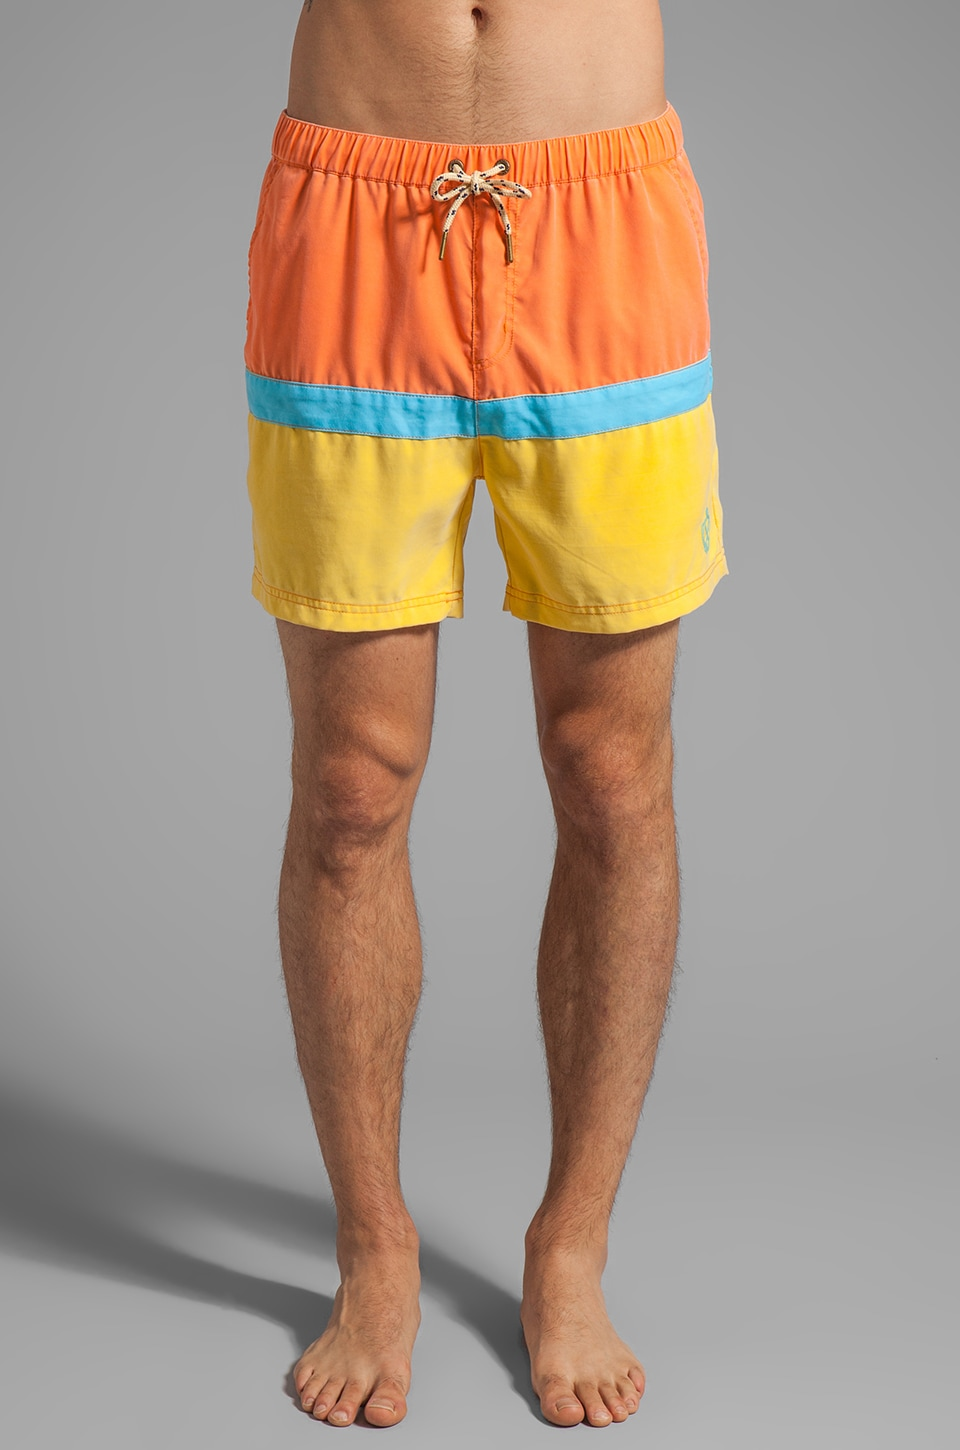 Zanerobe Nippa Swim Short in Orange/Yellow